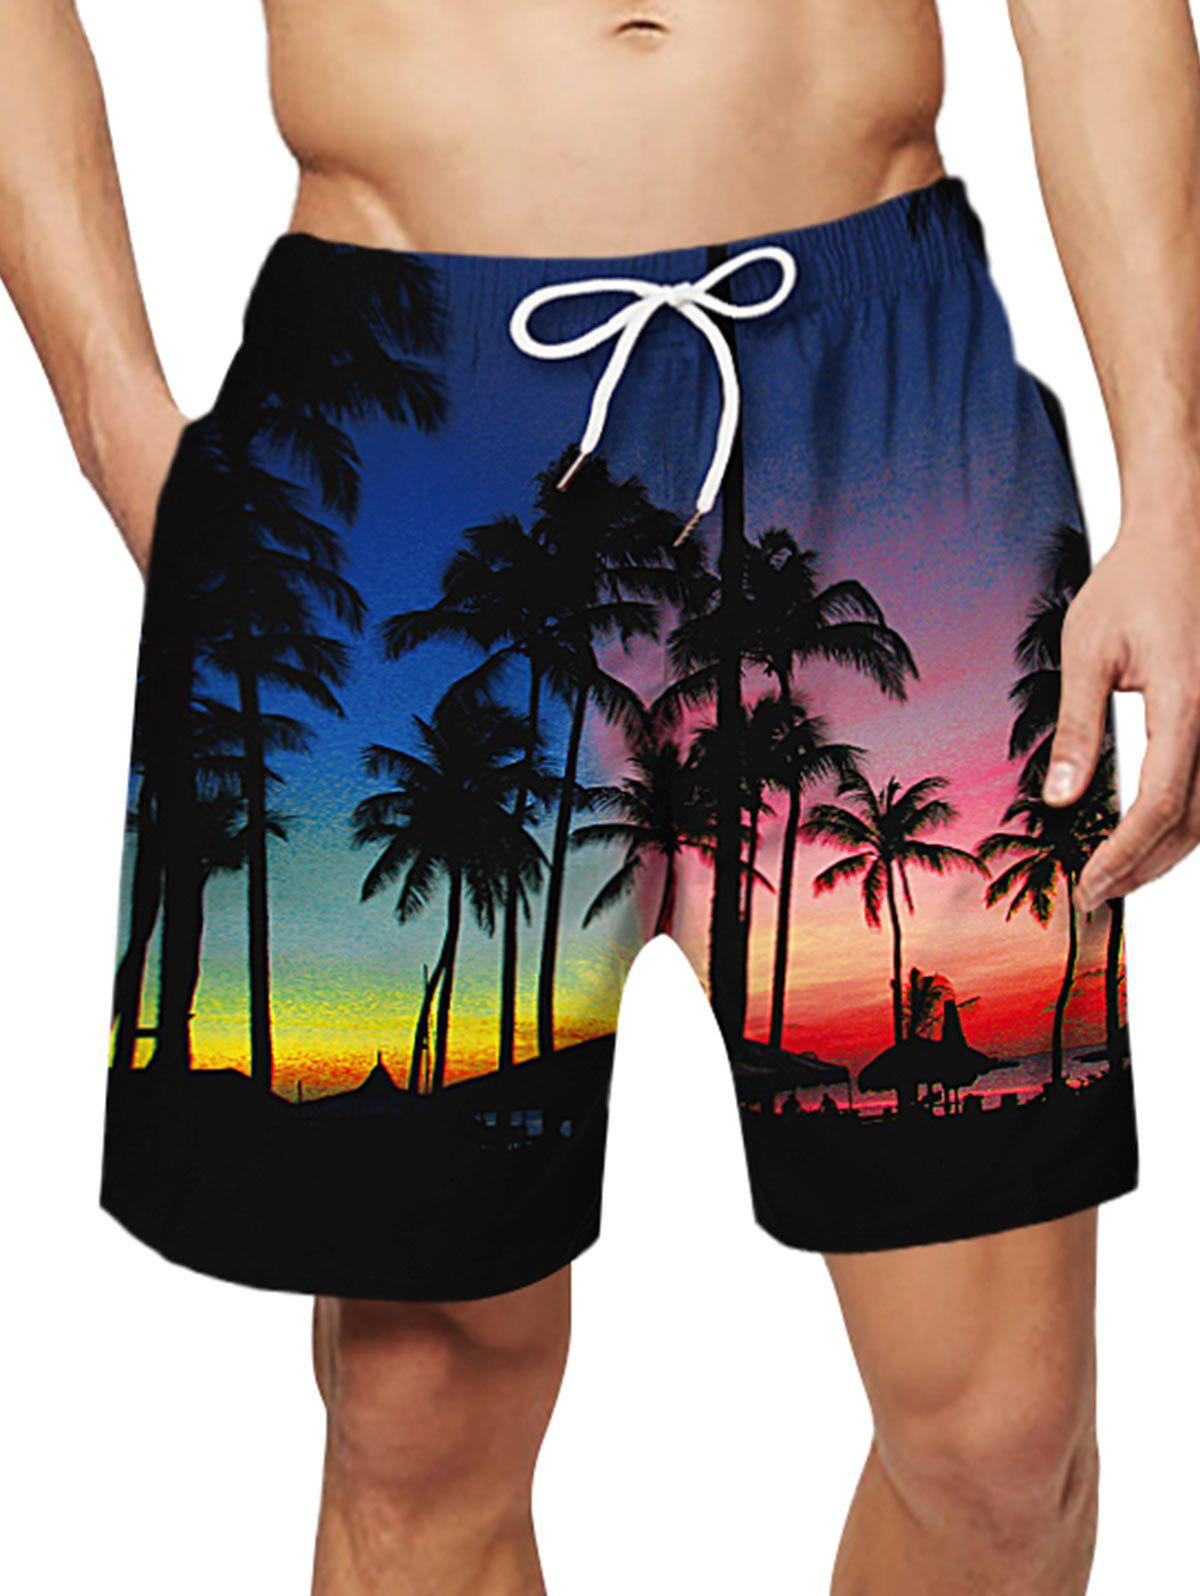 Coconut Tree Pattern Causal Board Shorts - multicolor L